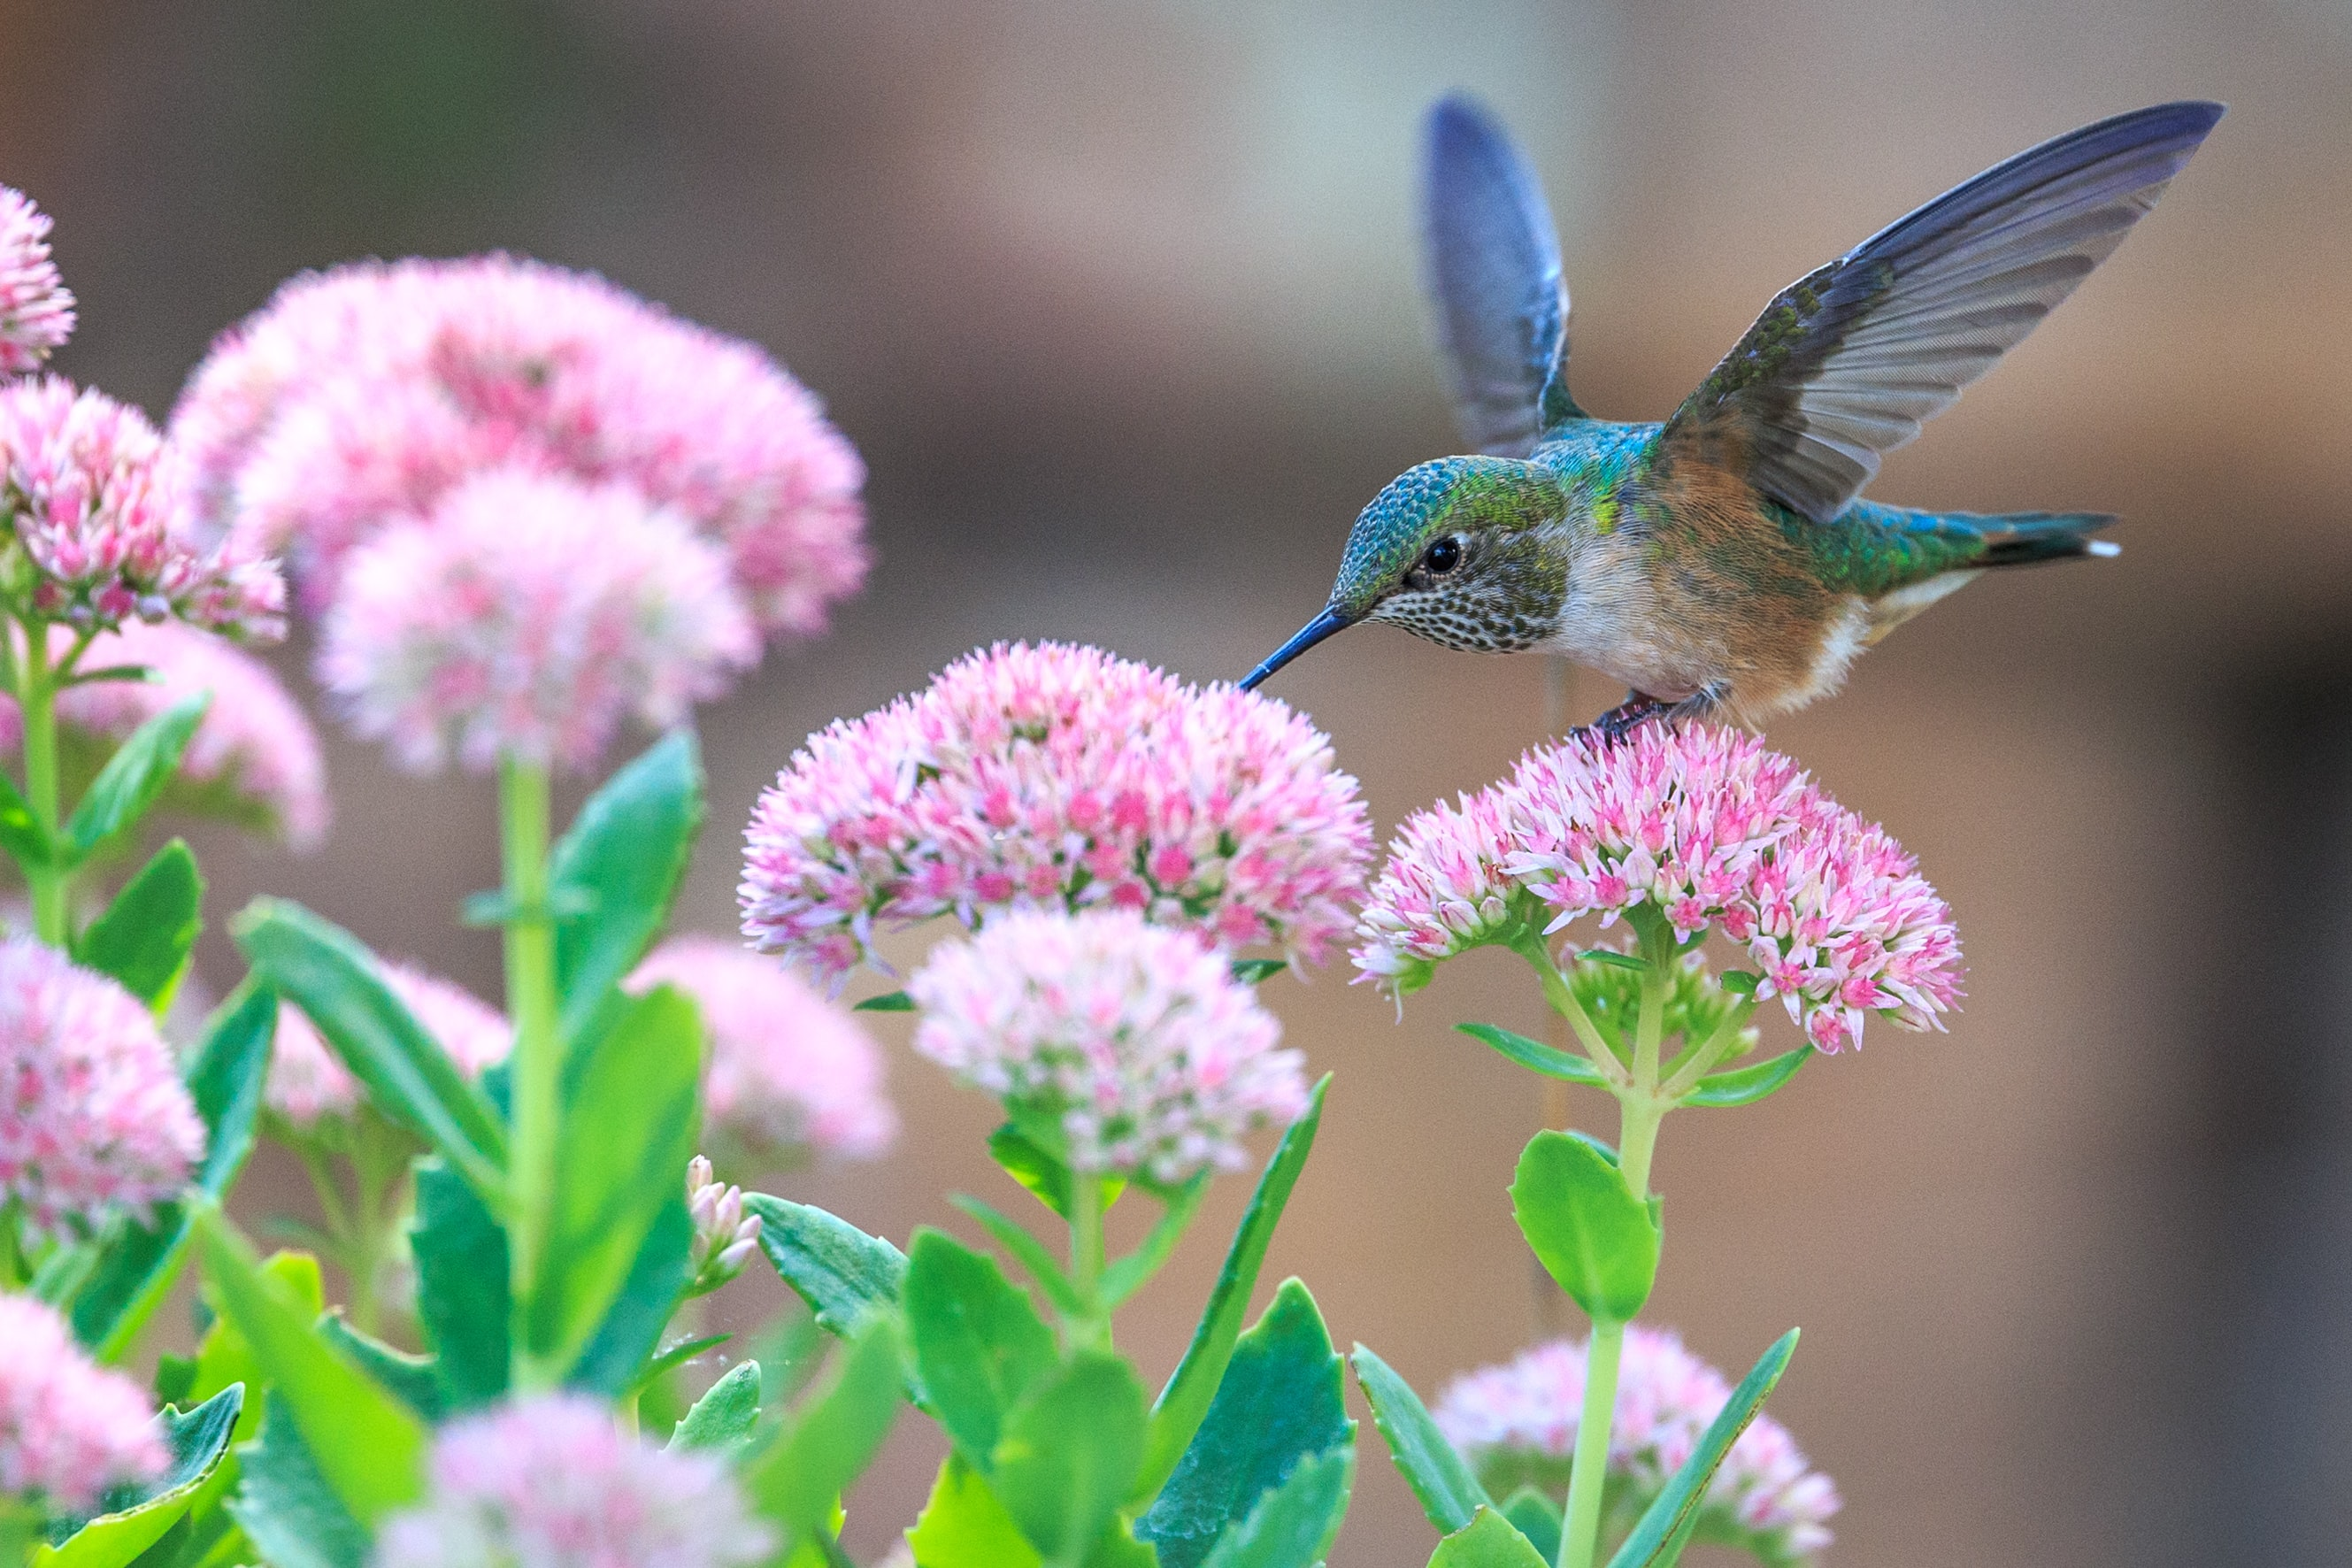 hummingbird perched on pink flower